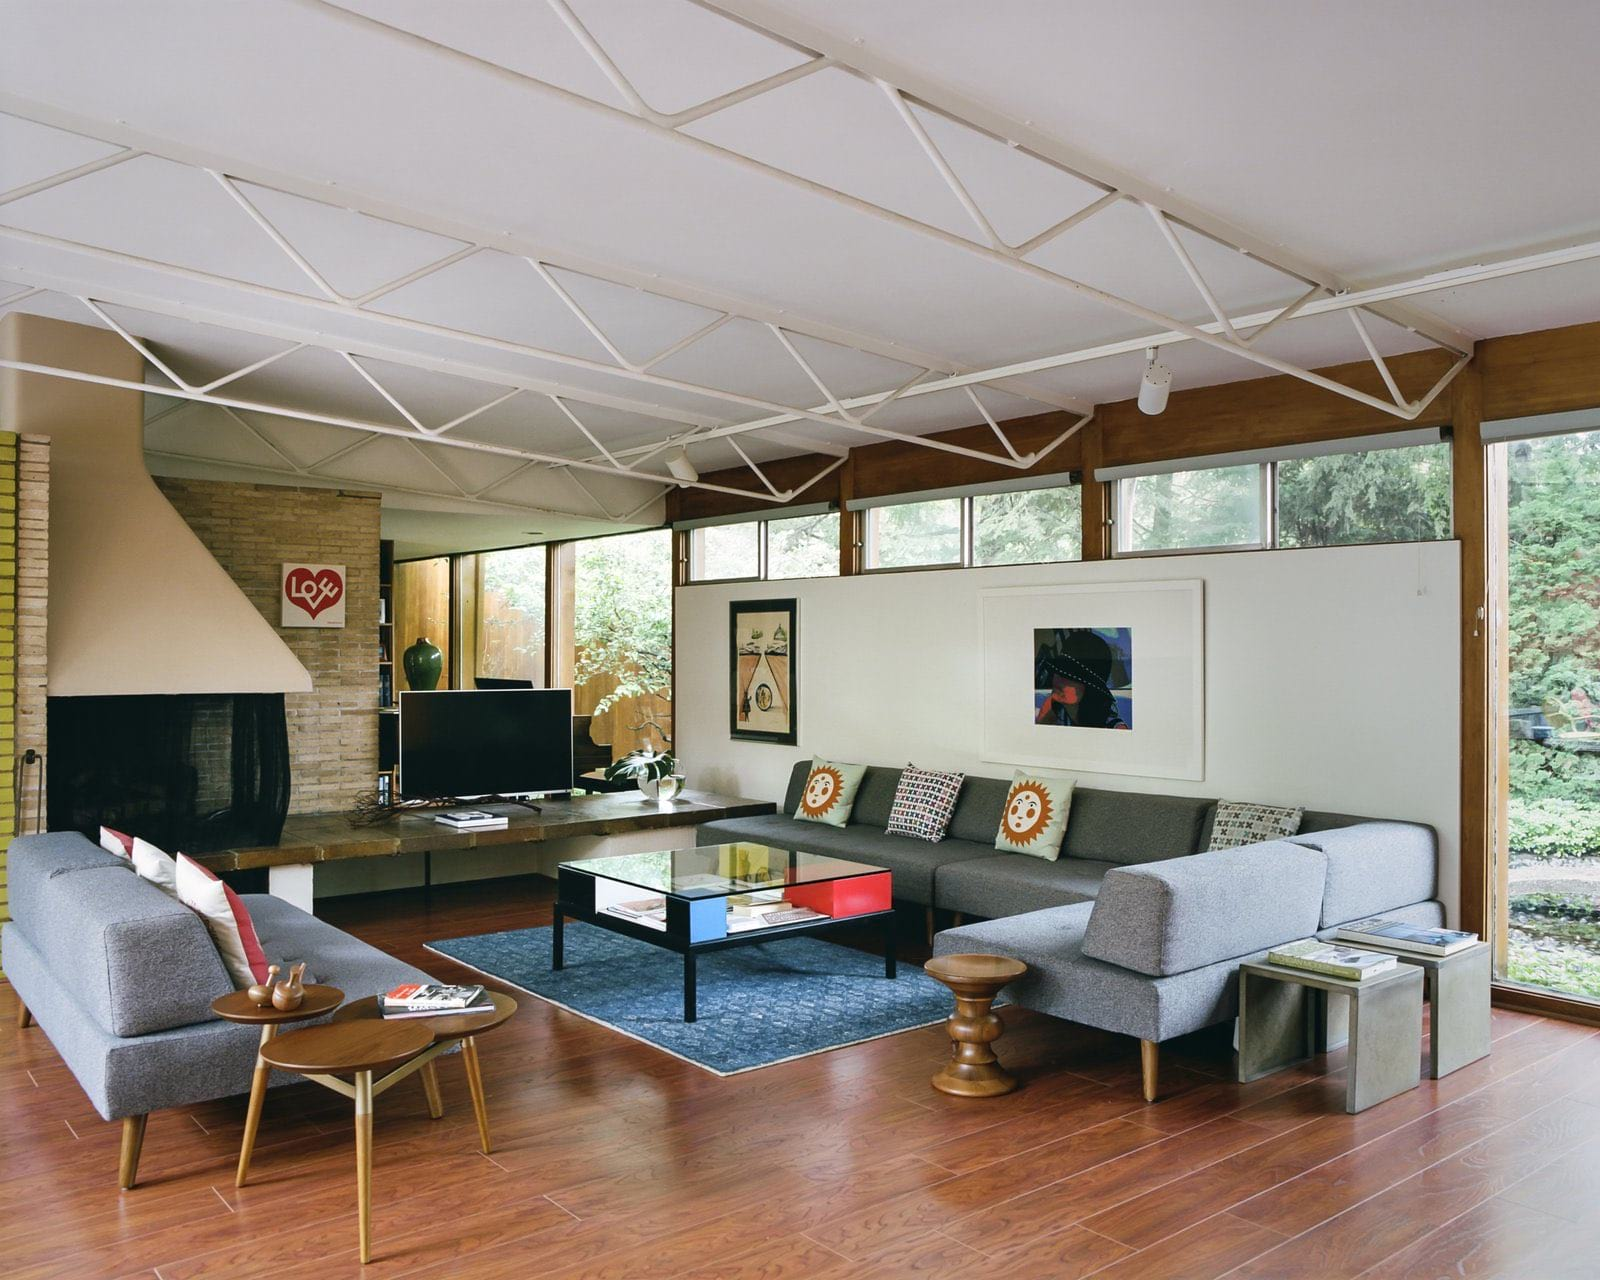 Alexander Girard residence In Michigan - living room